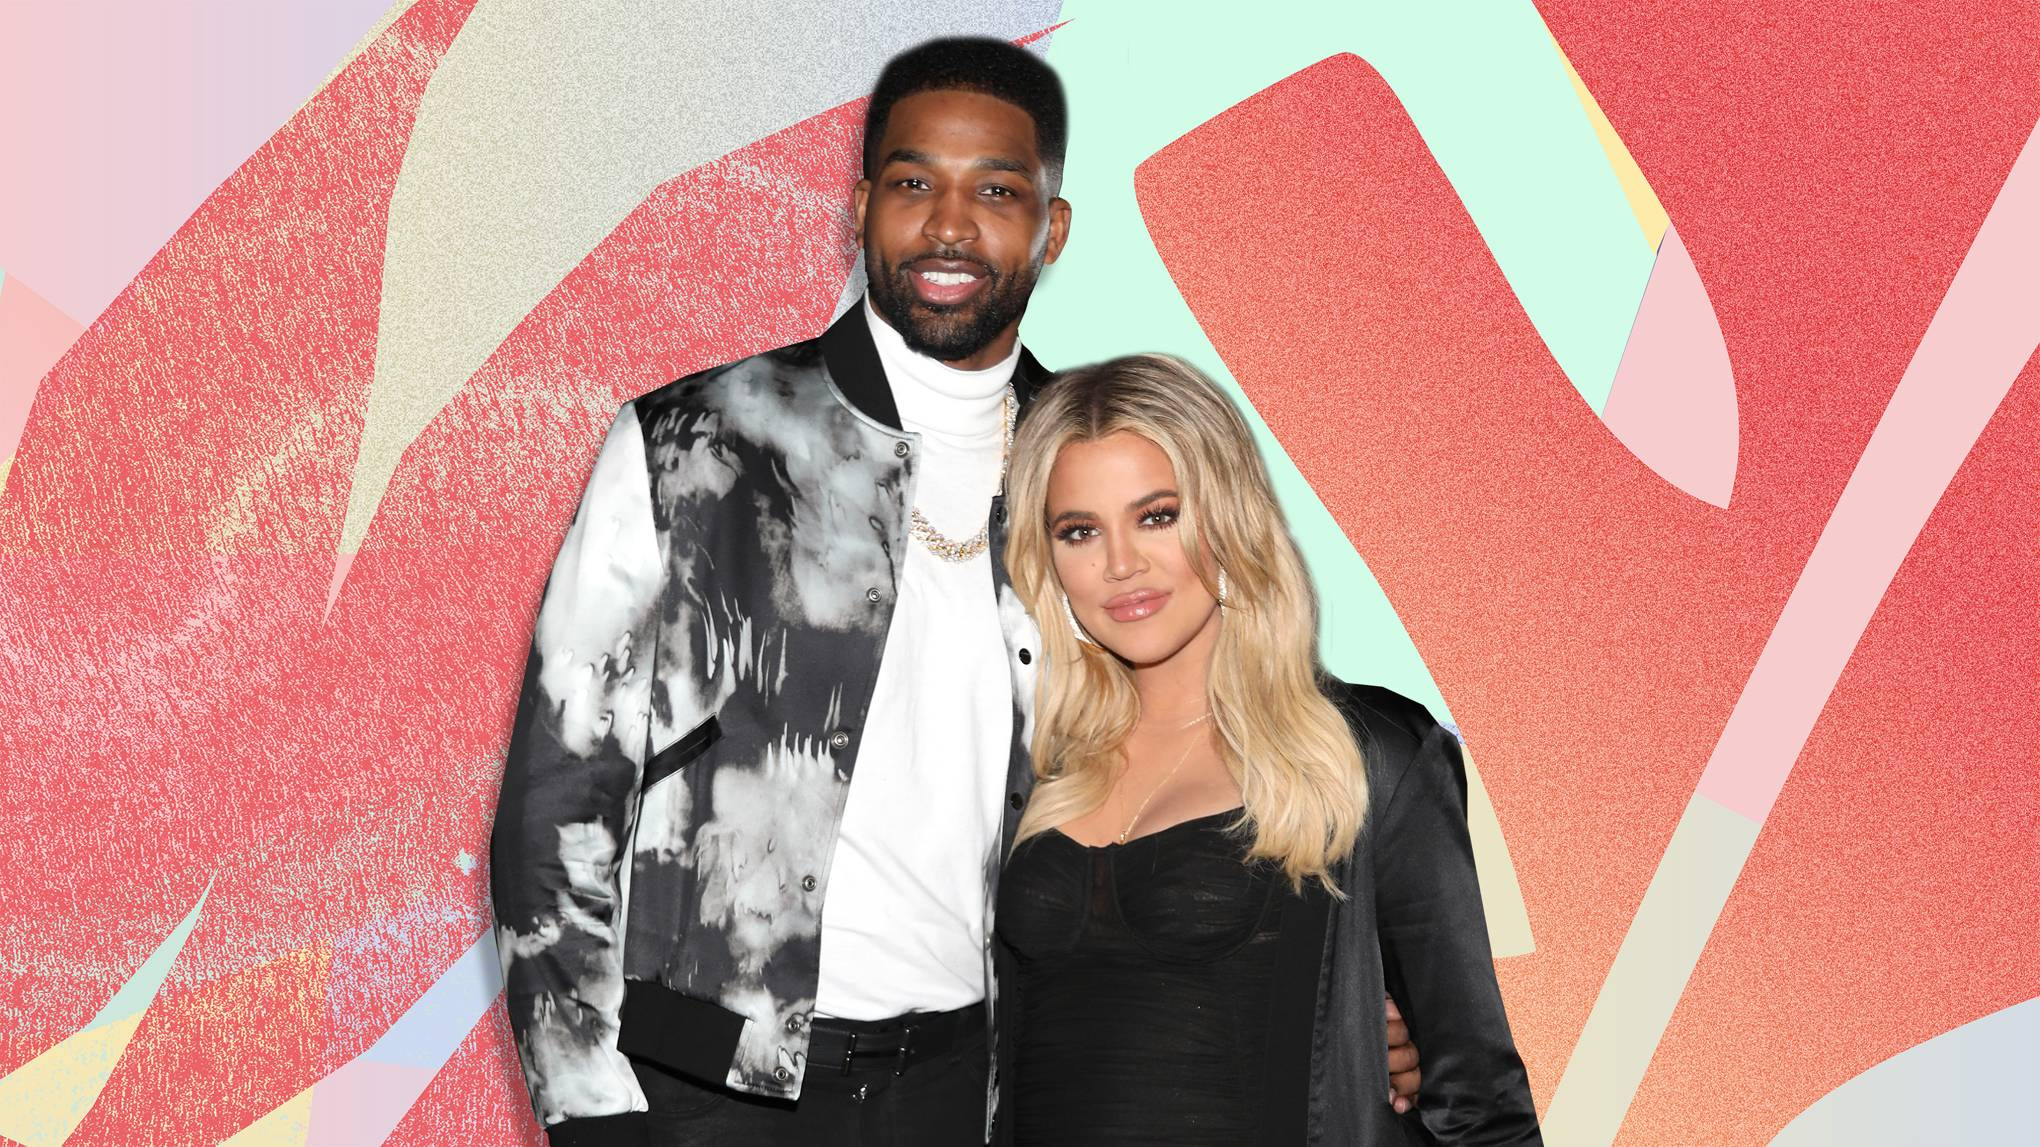 Khloé Kardashian And Tristan Thompson Relationship News And Updates